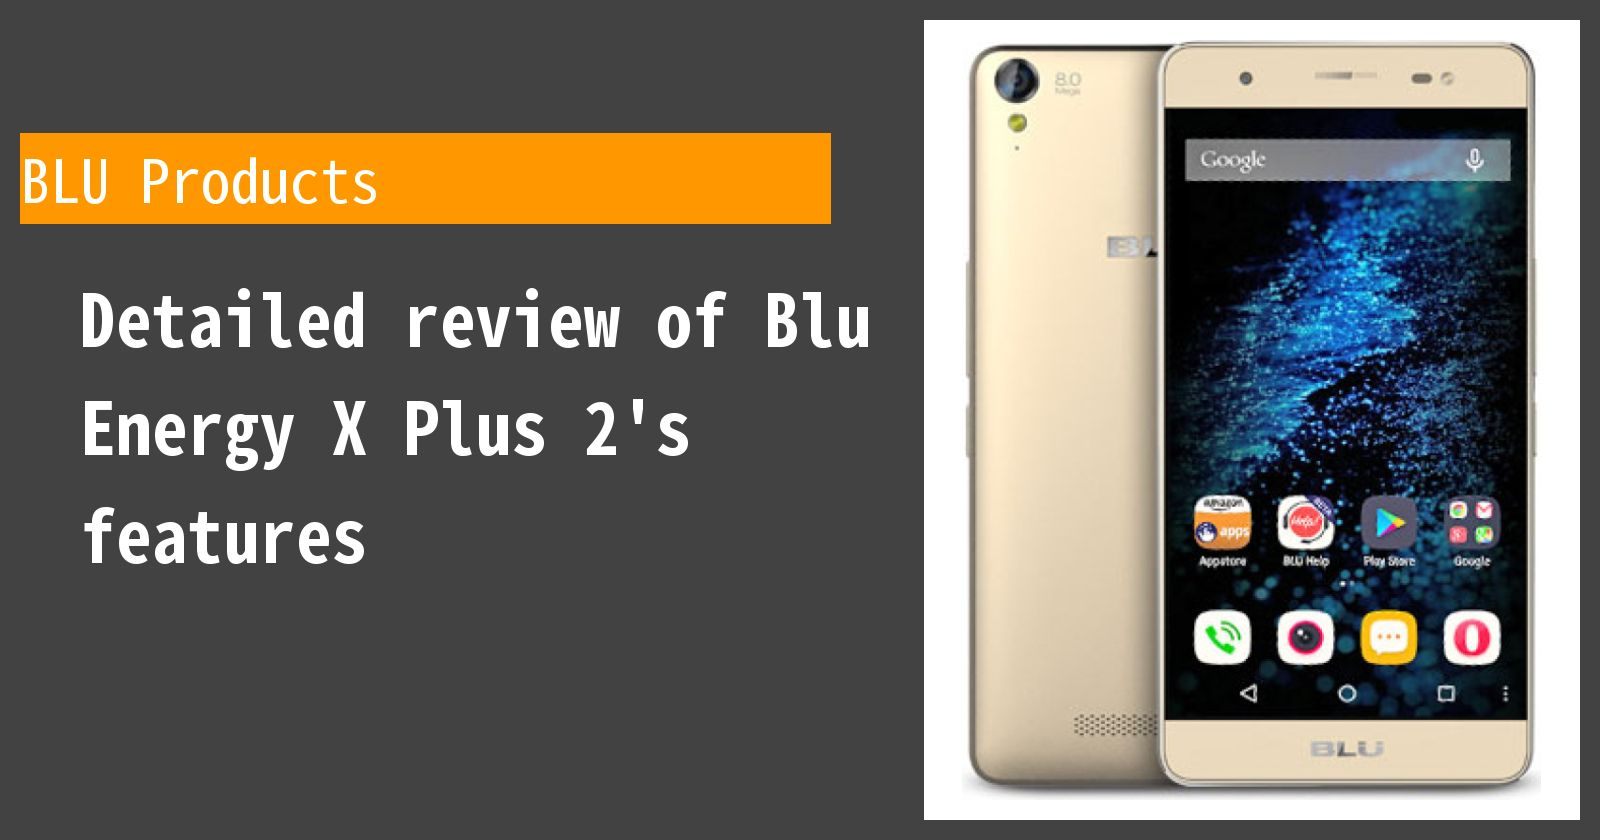 Detailed review of Blu Energy X Plus 2's features